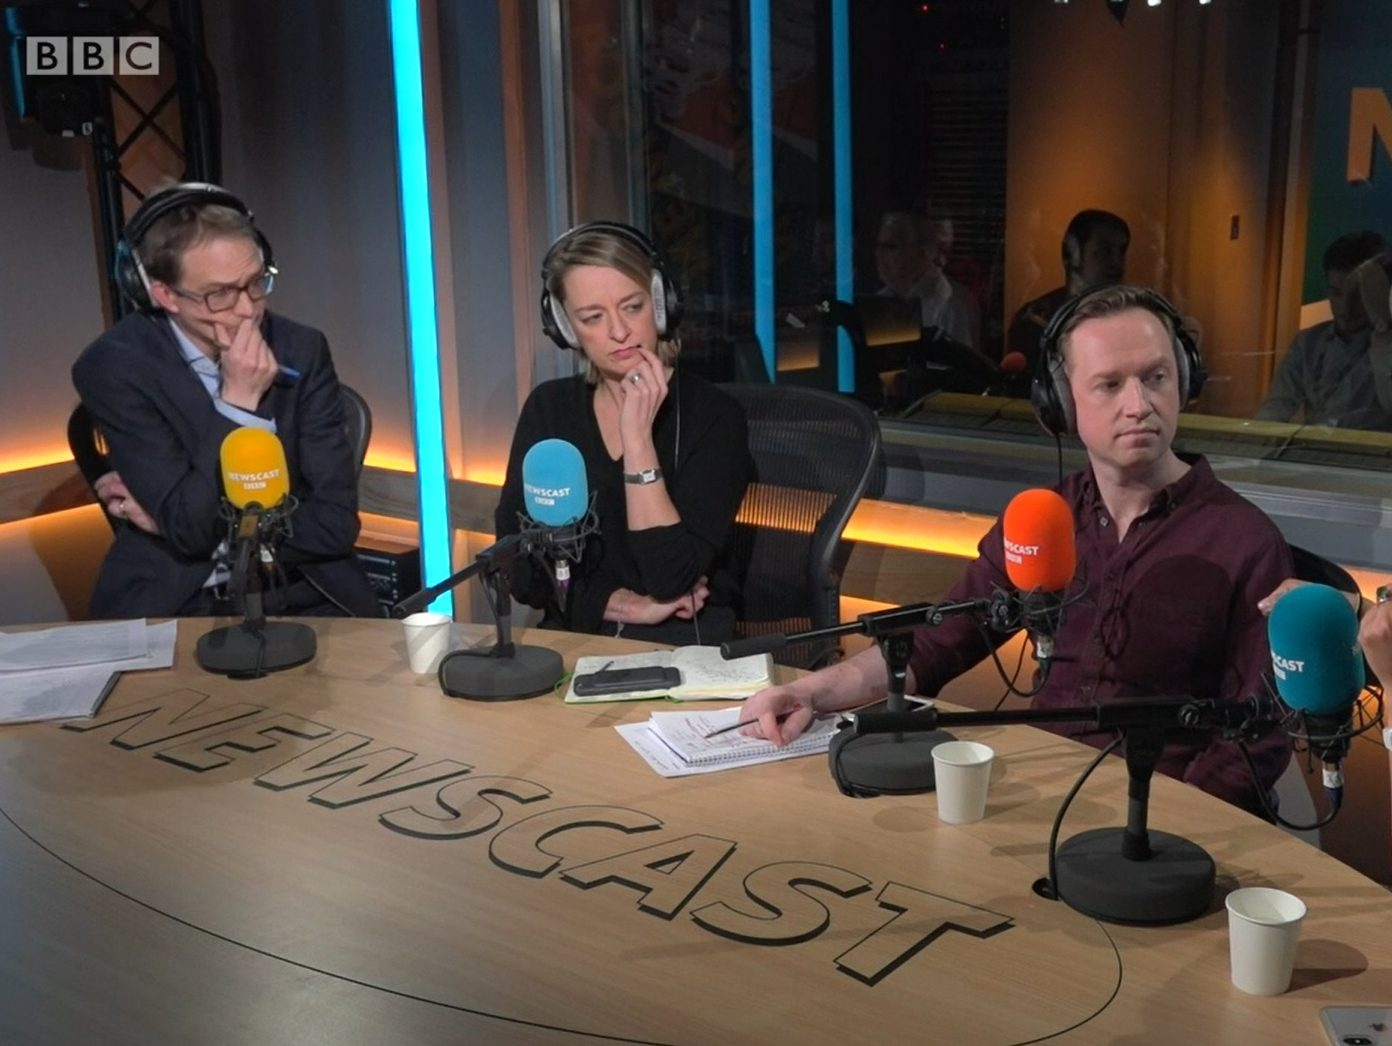 BBC to turn Newscast into daily podcast after success of Brexitcast